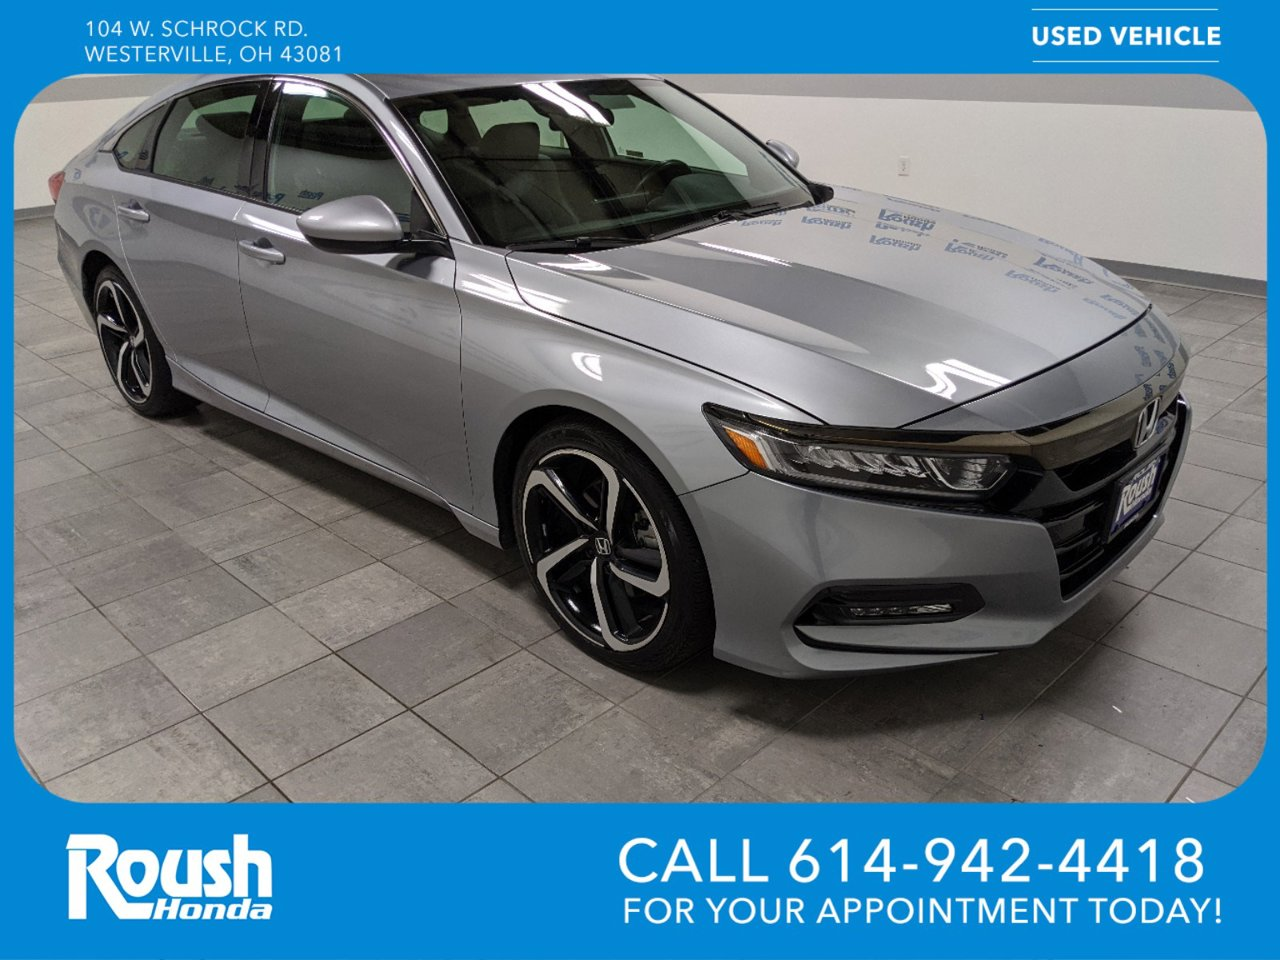 Used 2019 Honda Accord Sedan in Westerville, OH